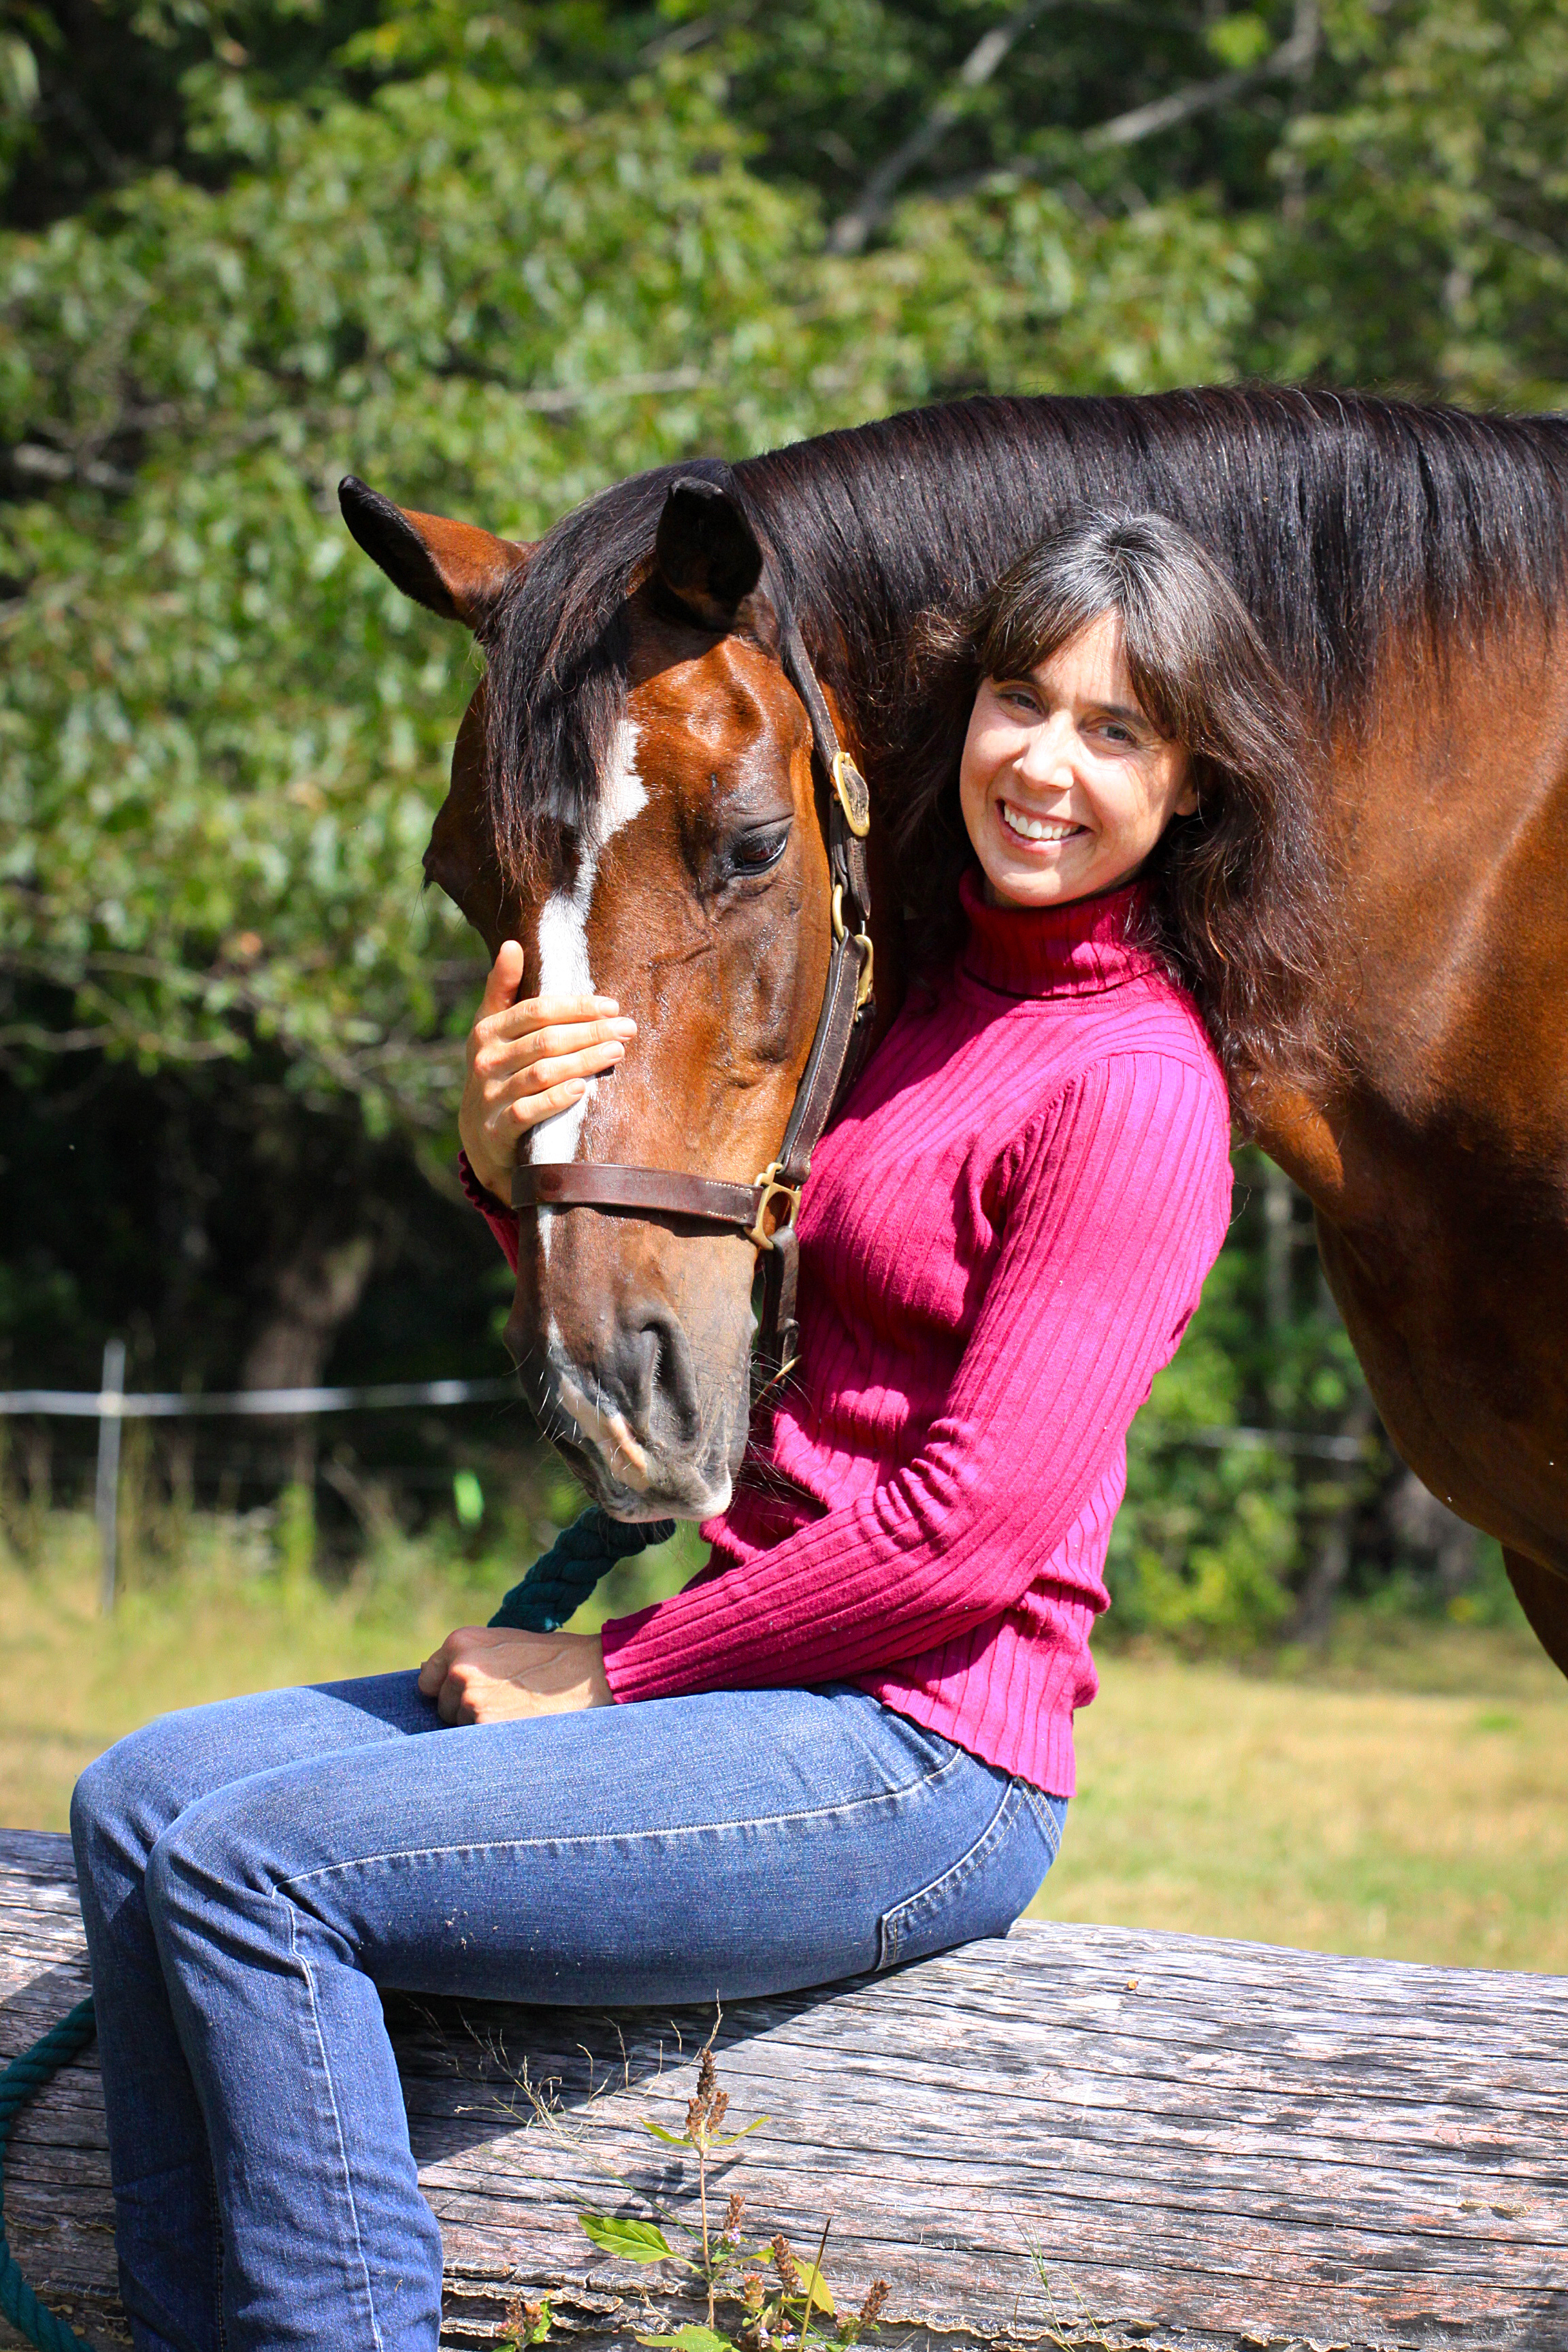 Winter horseback riding can be fun, but special care is needed